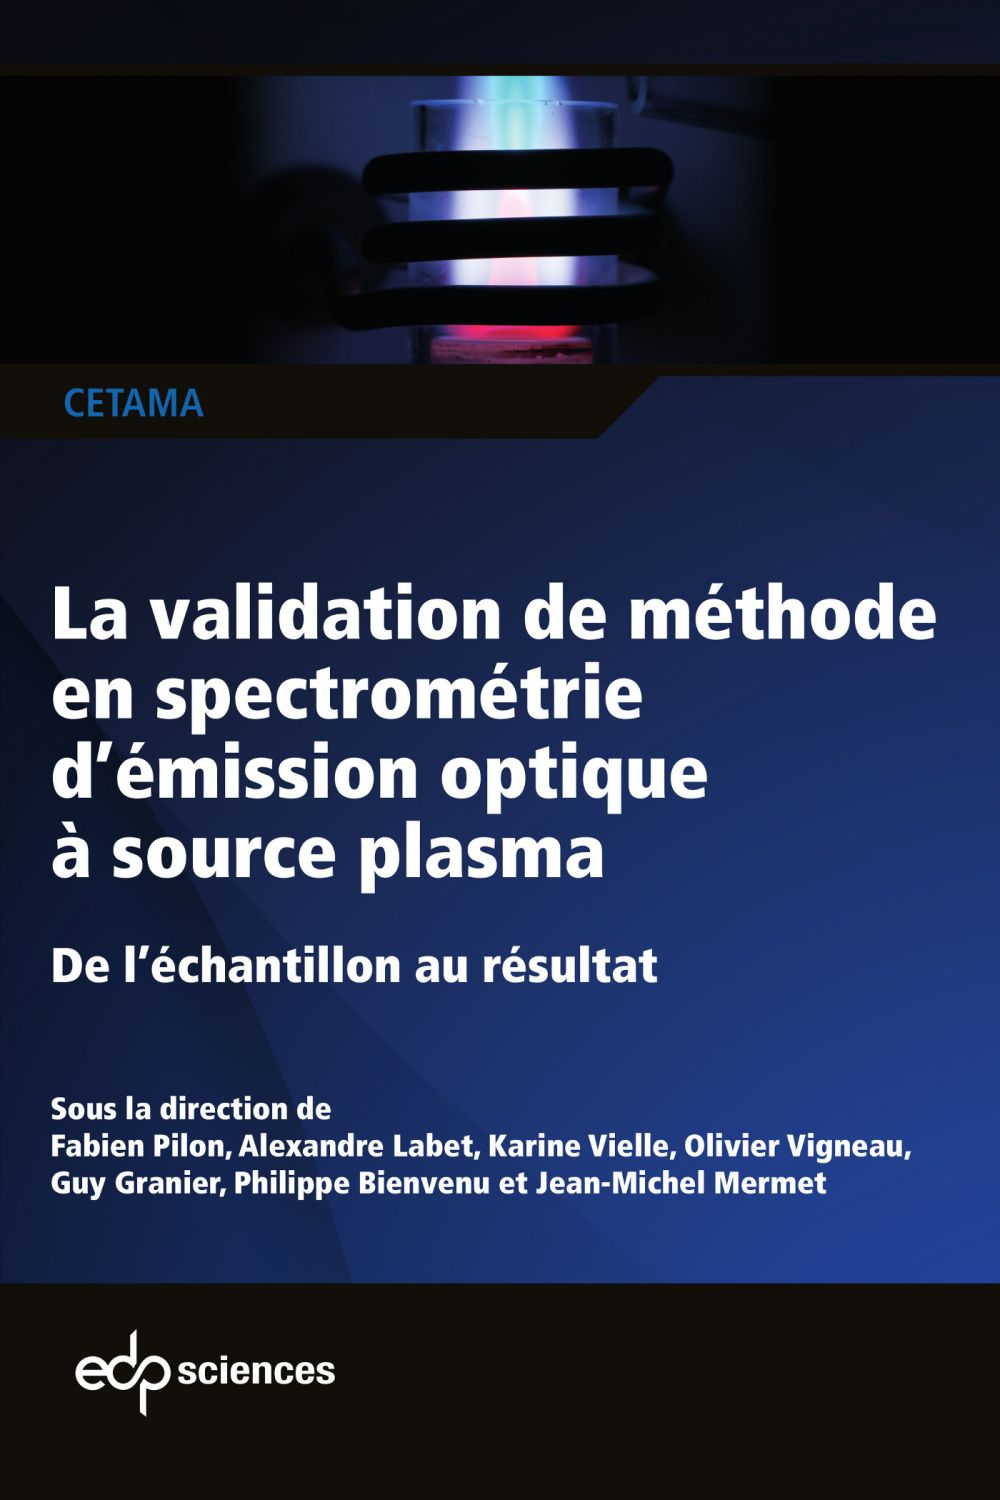 La validation de méthode en spectrométrie d'émission optique à source plasma